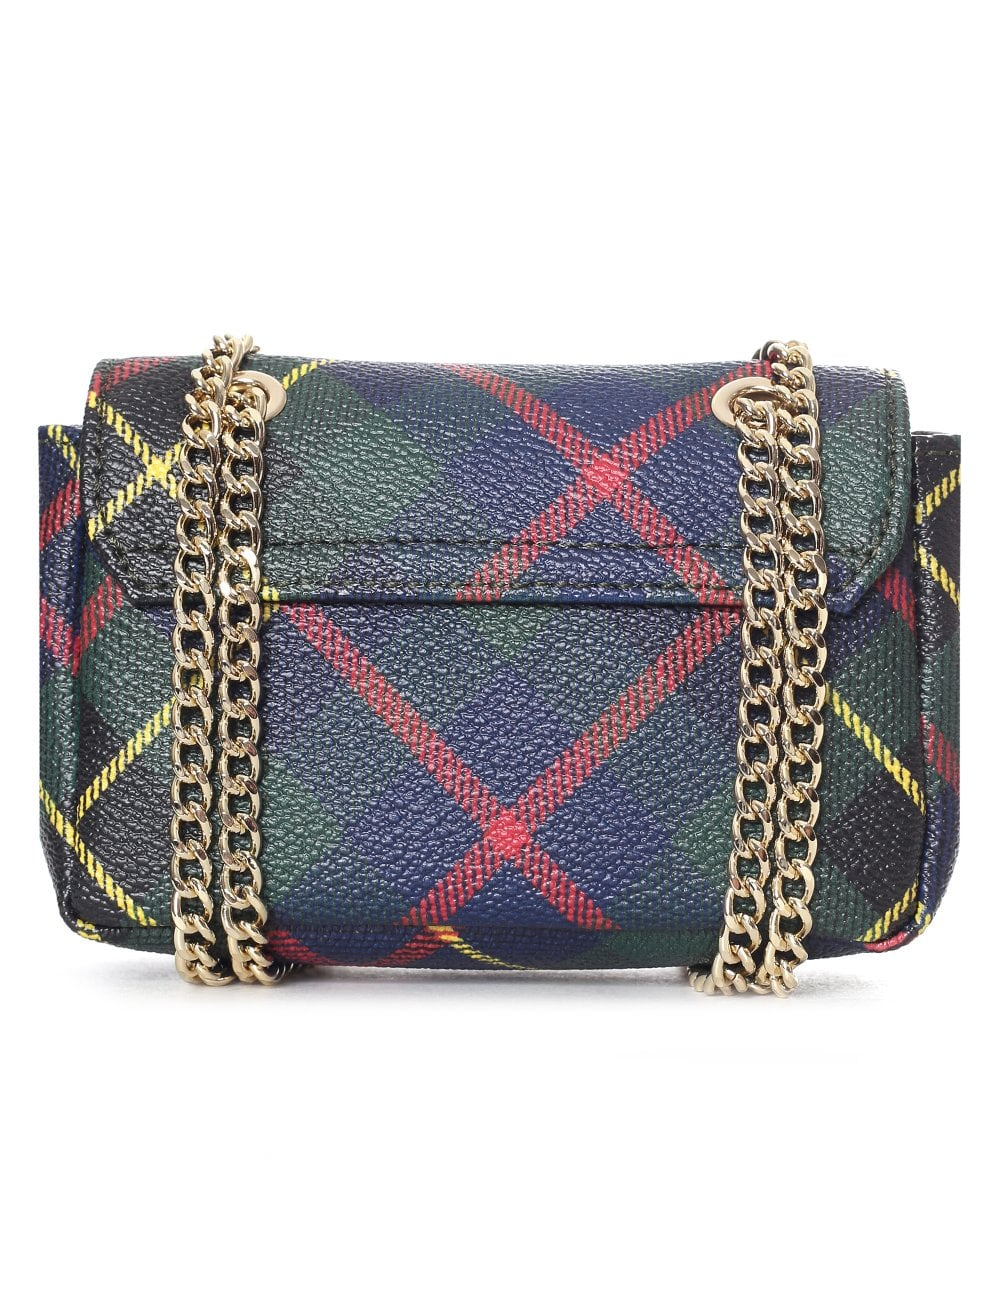 d092c425ab9 Vivienne Westwood Women's Derby Small Purse With Chain Hunting Tartan